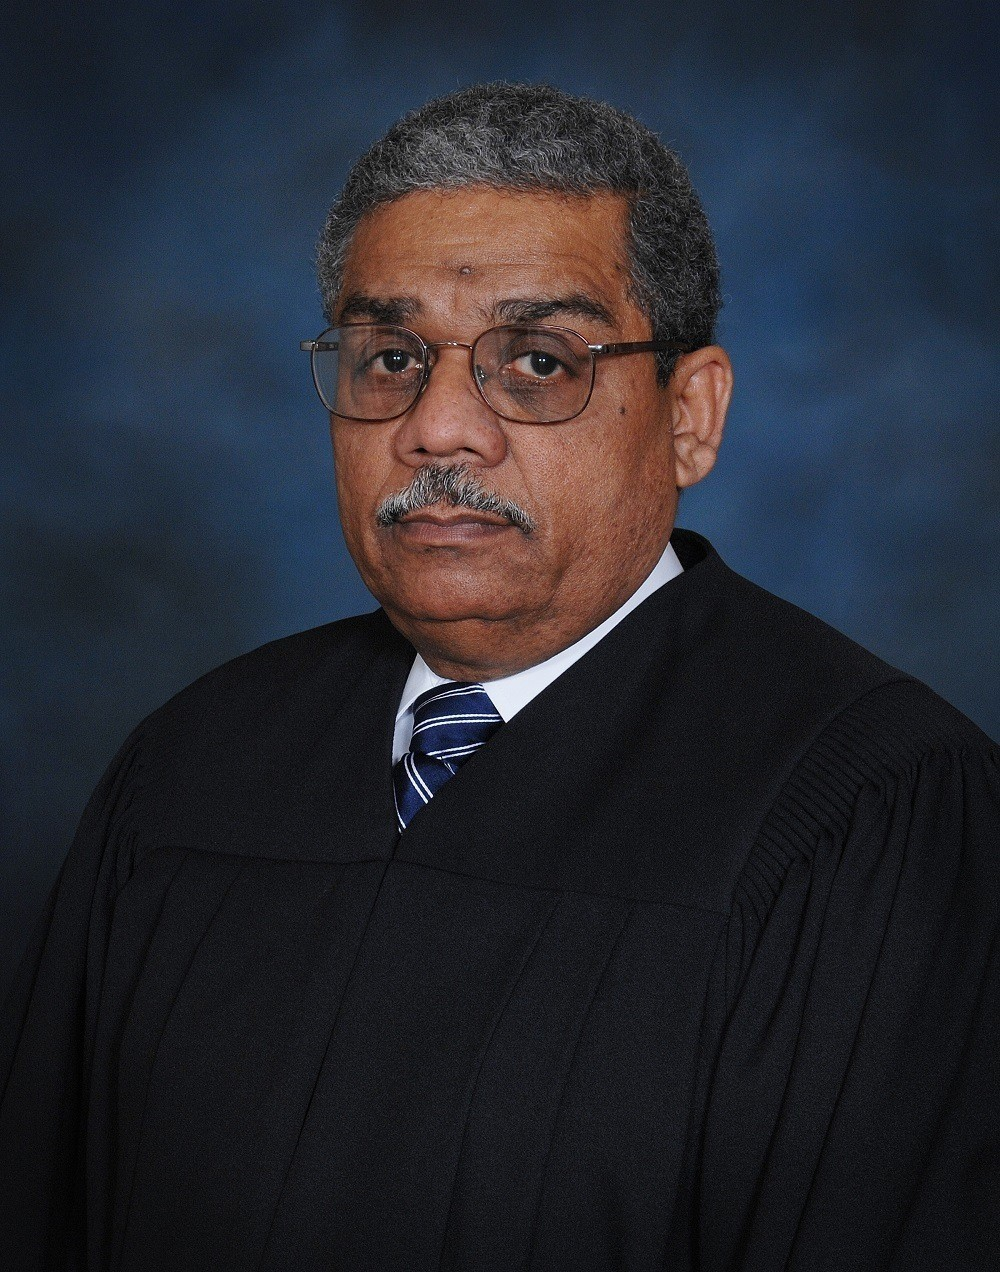 Judge banned notetaking for noncredentialed media during Keith Davis Jr trial  Baltimore